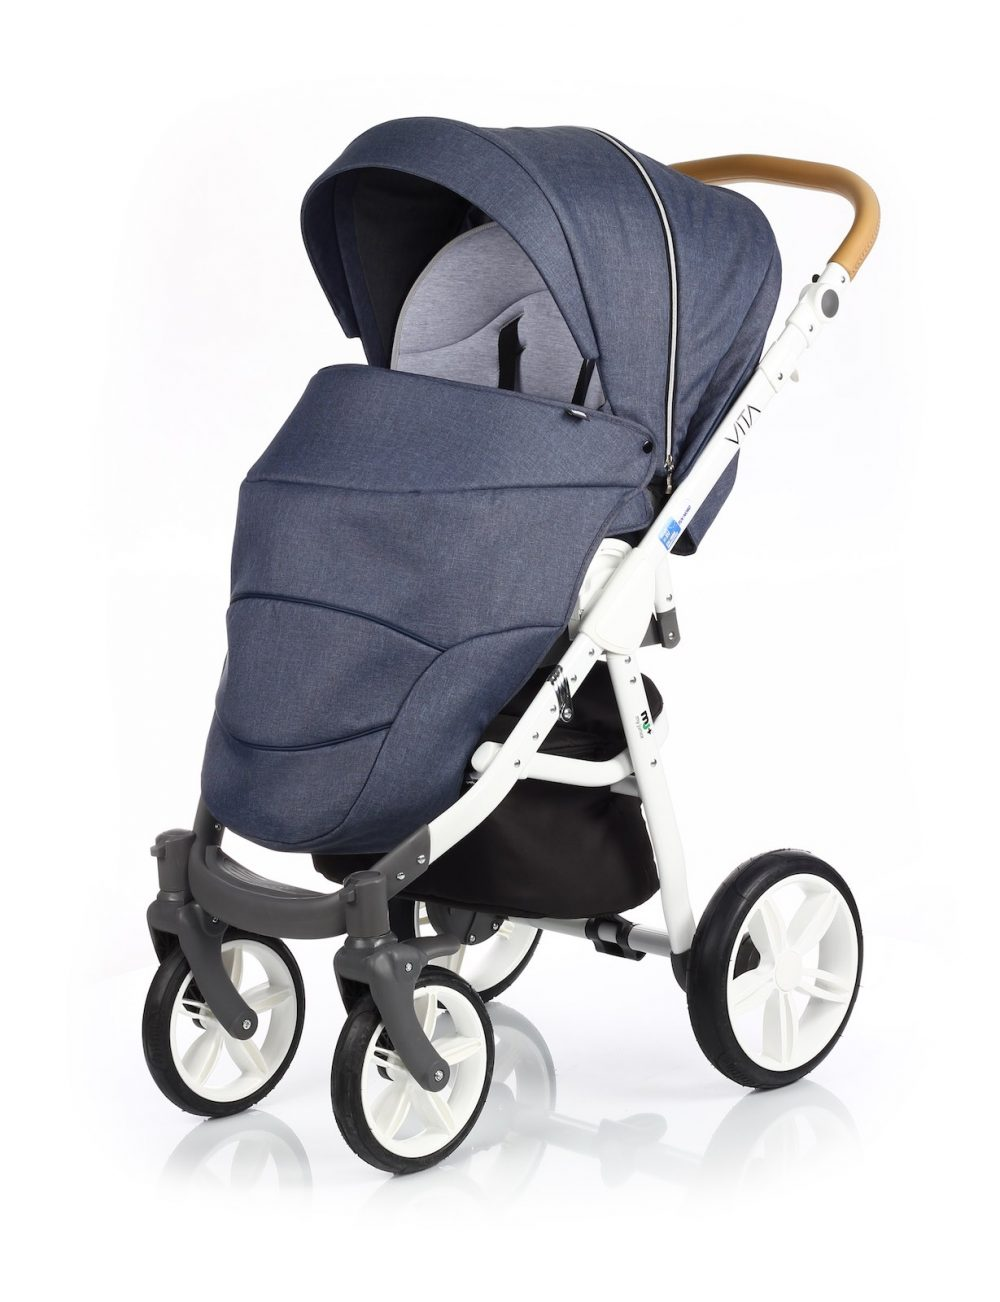 passeggino-my-junior-vita-denim-navy-5